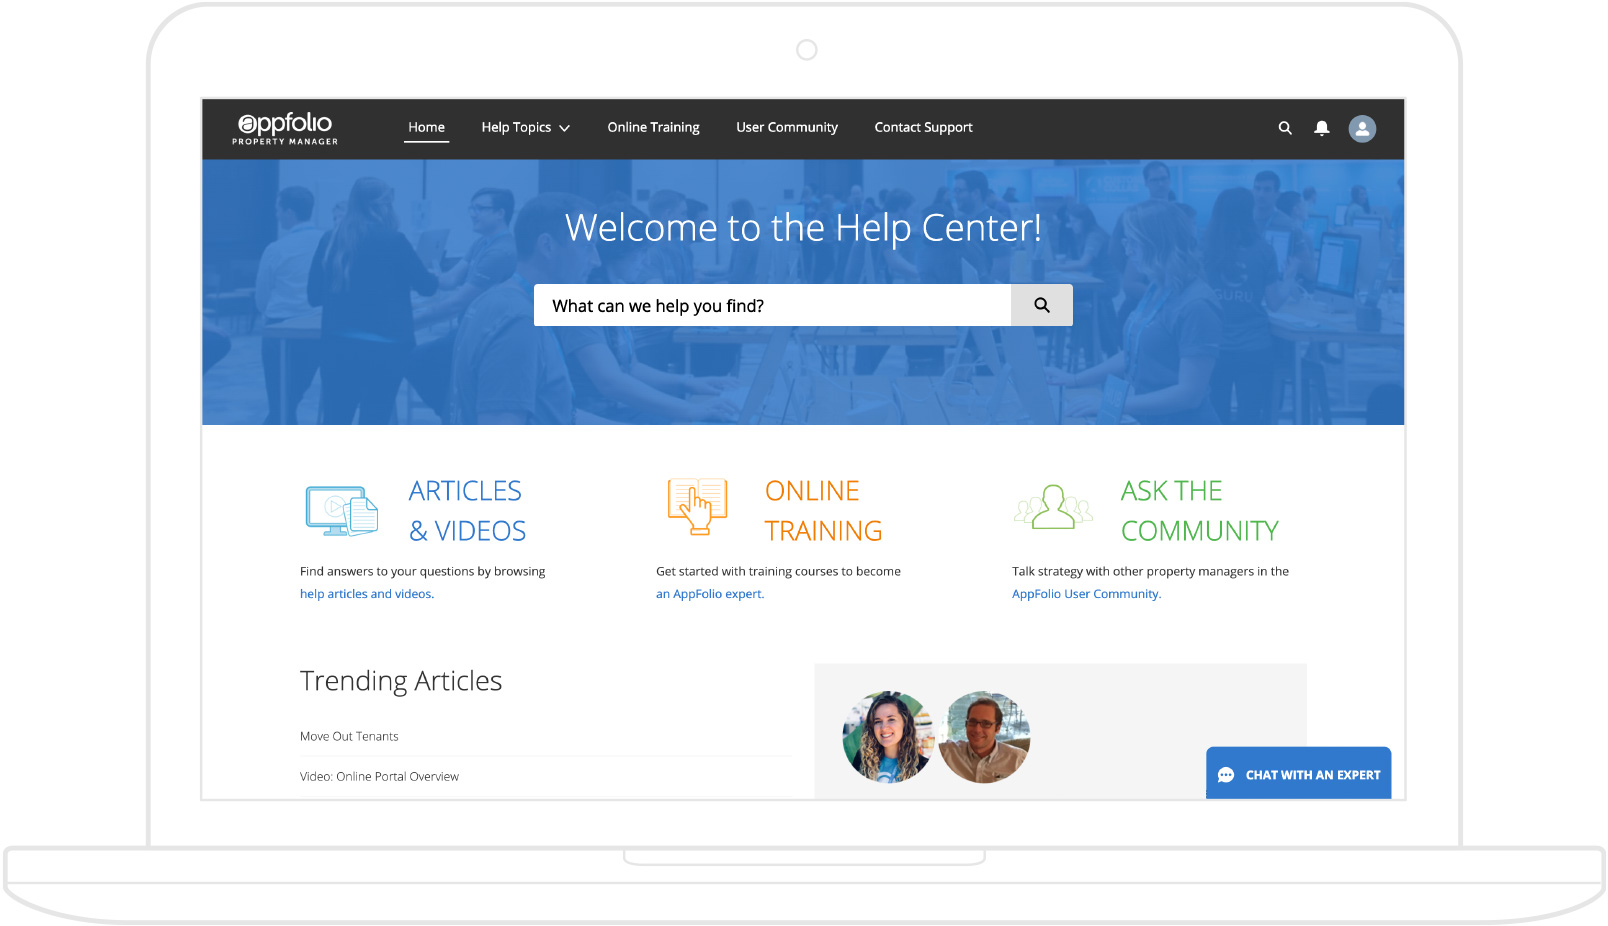 Screenshot of AppFolio's Help Center for training & support resources, displayed on a laptop.